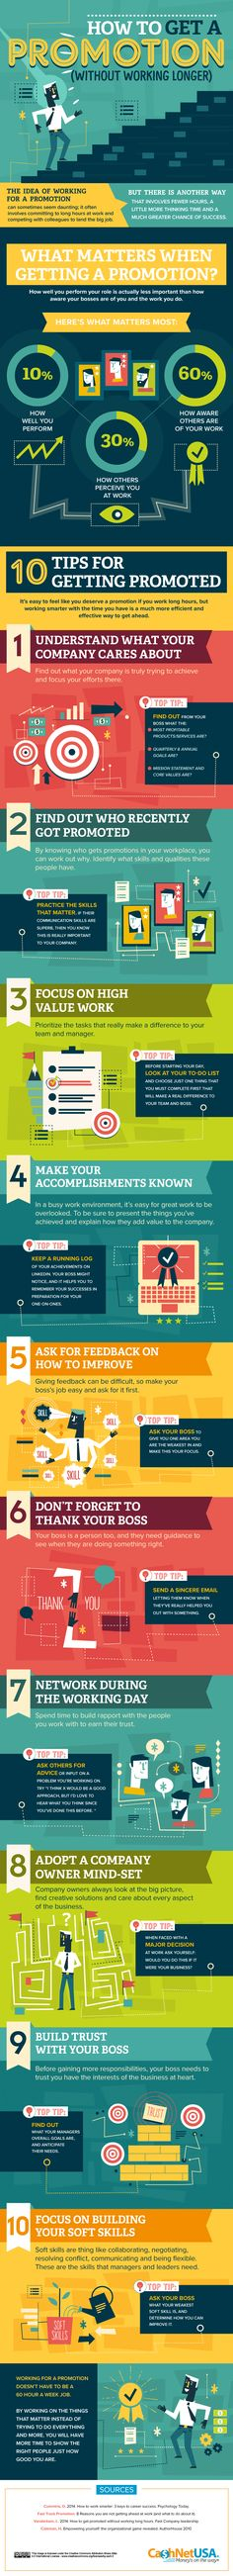 10 Steps To a Promotion (Without Working Longer)